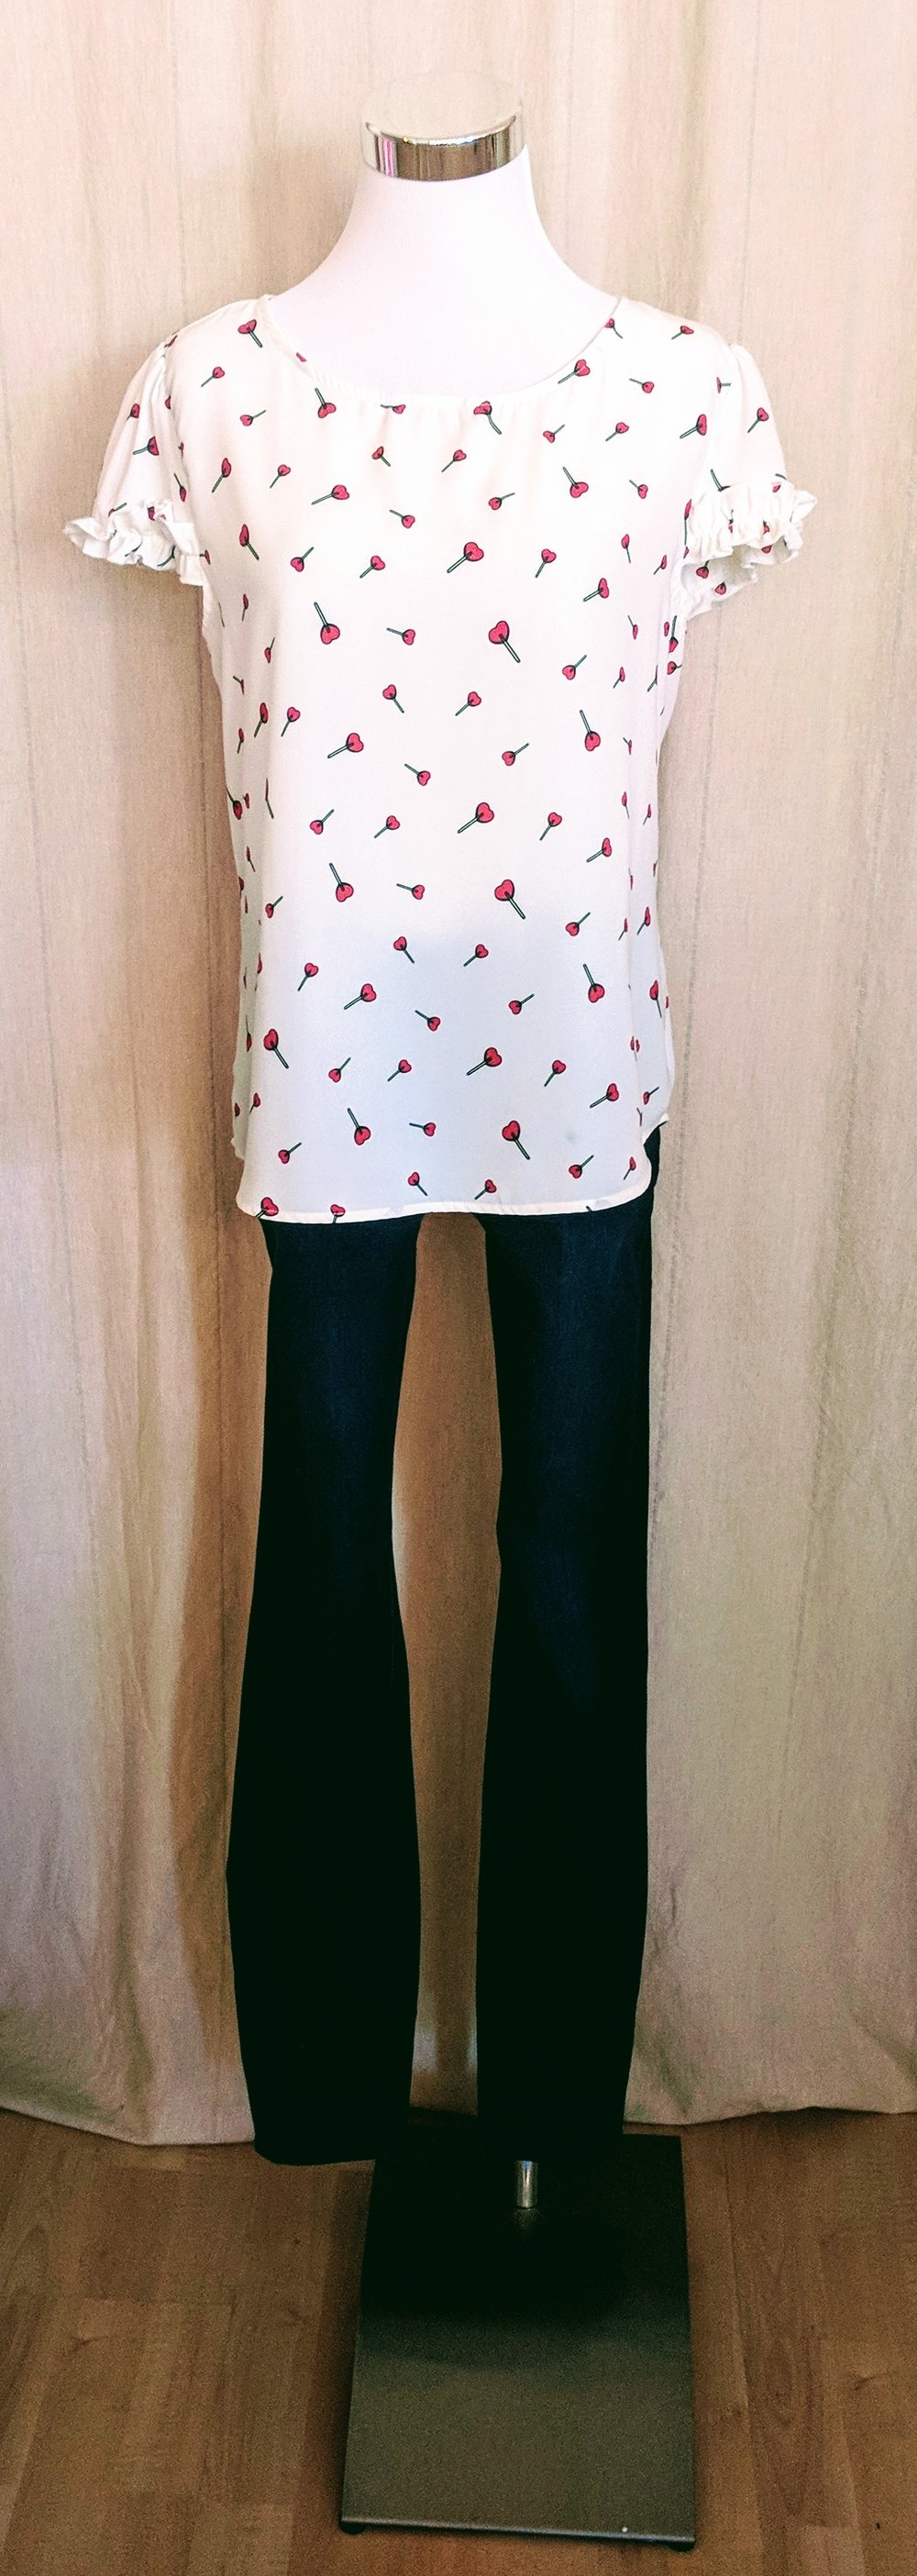 White w/ hearts flutter sleeve top.